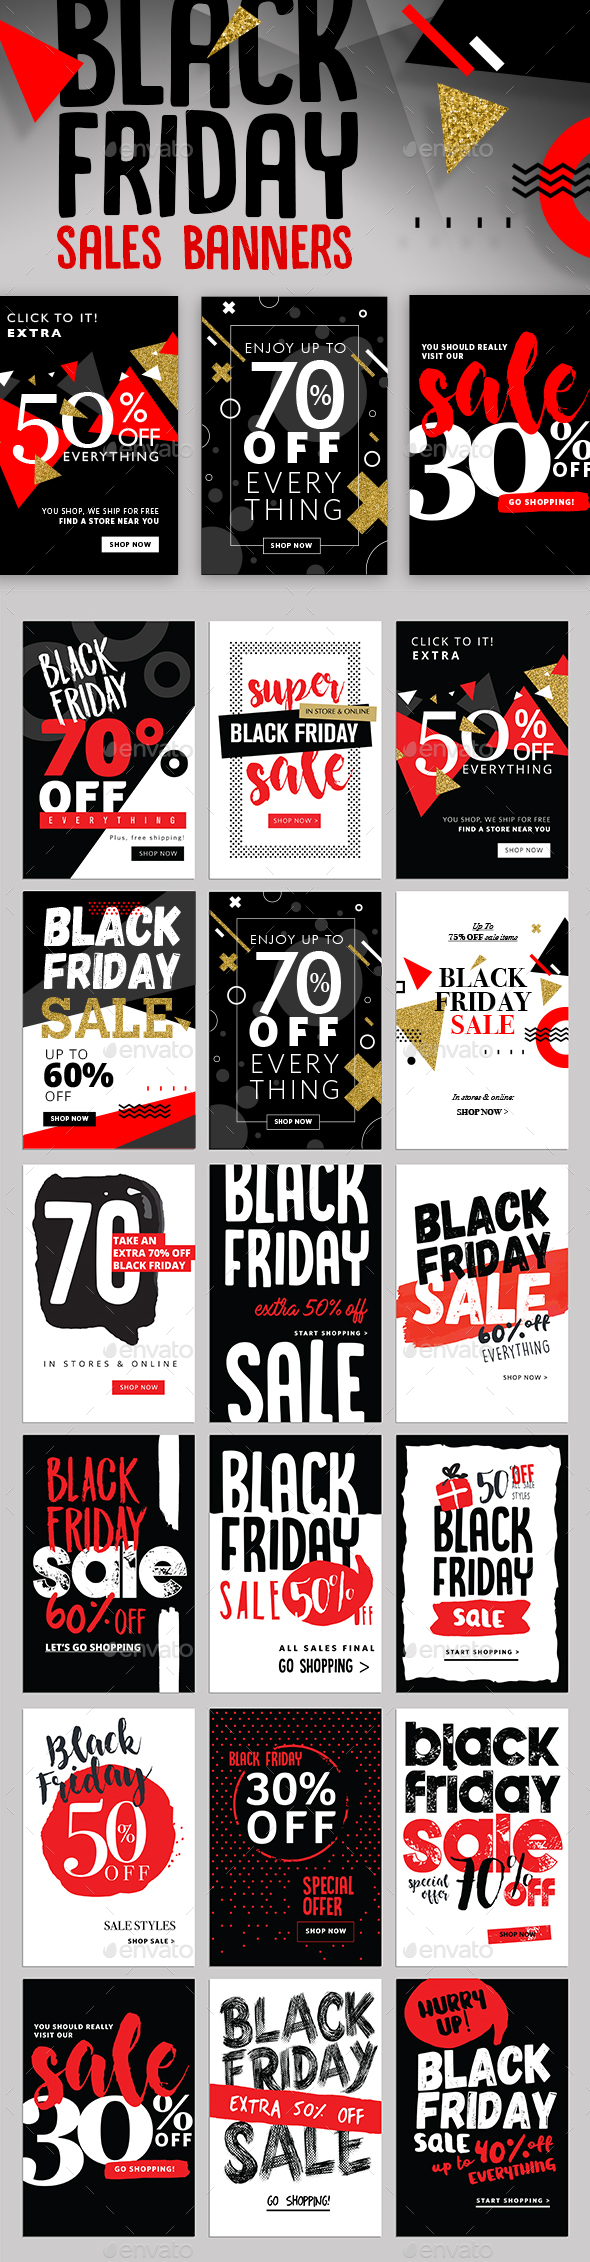 Black Friday Ads. Welcome to paydayloansboise.gq! Now you can always be in the know with the latest and largest collection of Black Friday and Cyber Monday deals, online sales, and information.